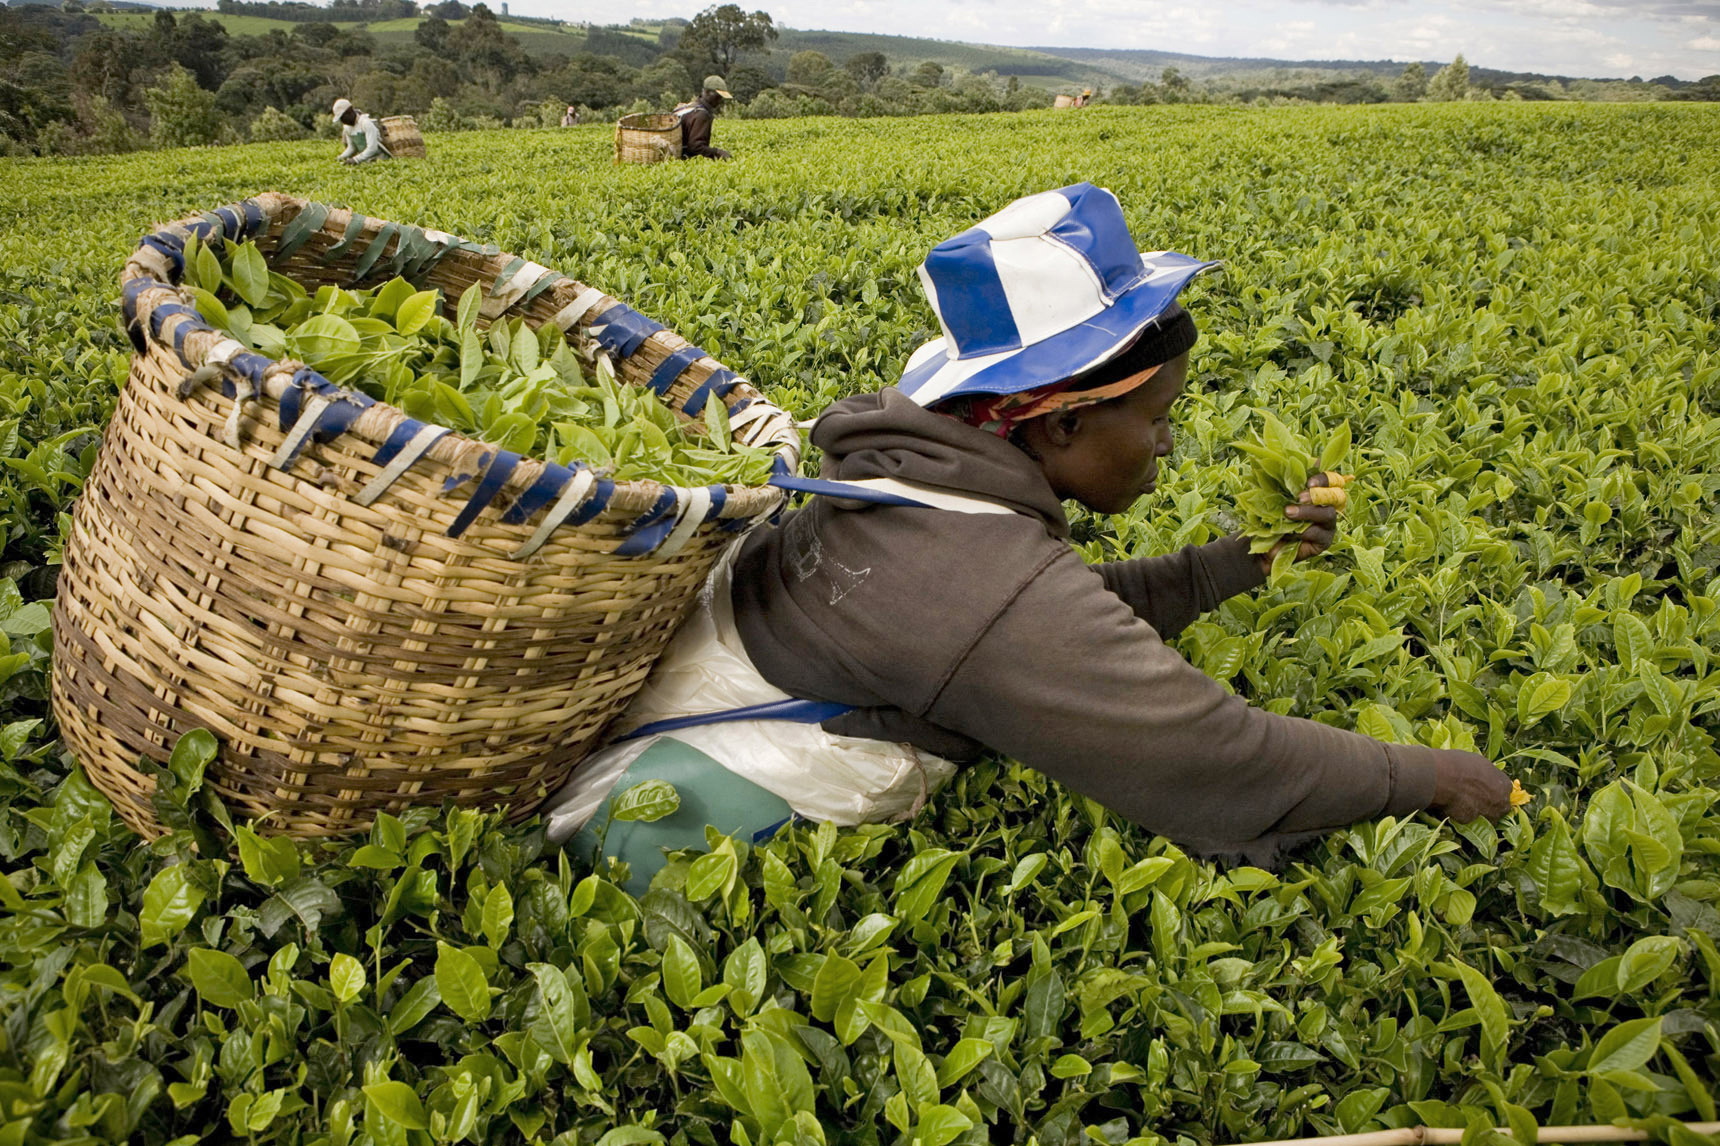 Pickers attend to a tea plantation in Kericho, Kenya. A study has recently revealed that African nations can break dependence on food imports and produce enough to feed a growing population within a decade